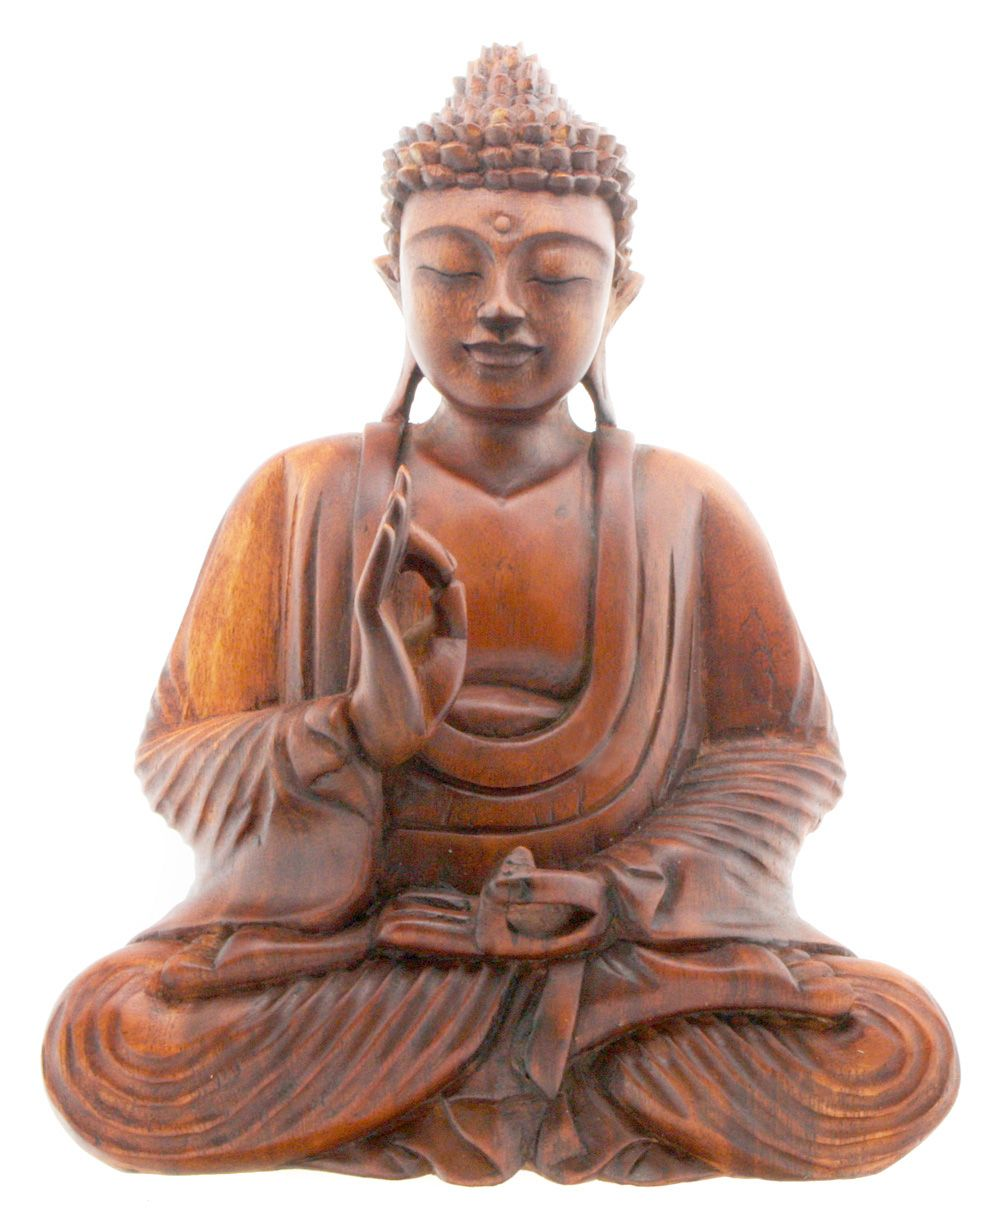 buddha google search my heroes and influences pinterest category home family home decor product hand carved wood buddha statue